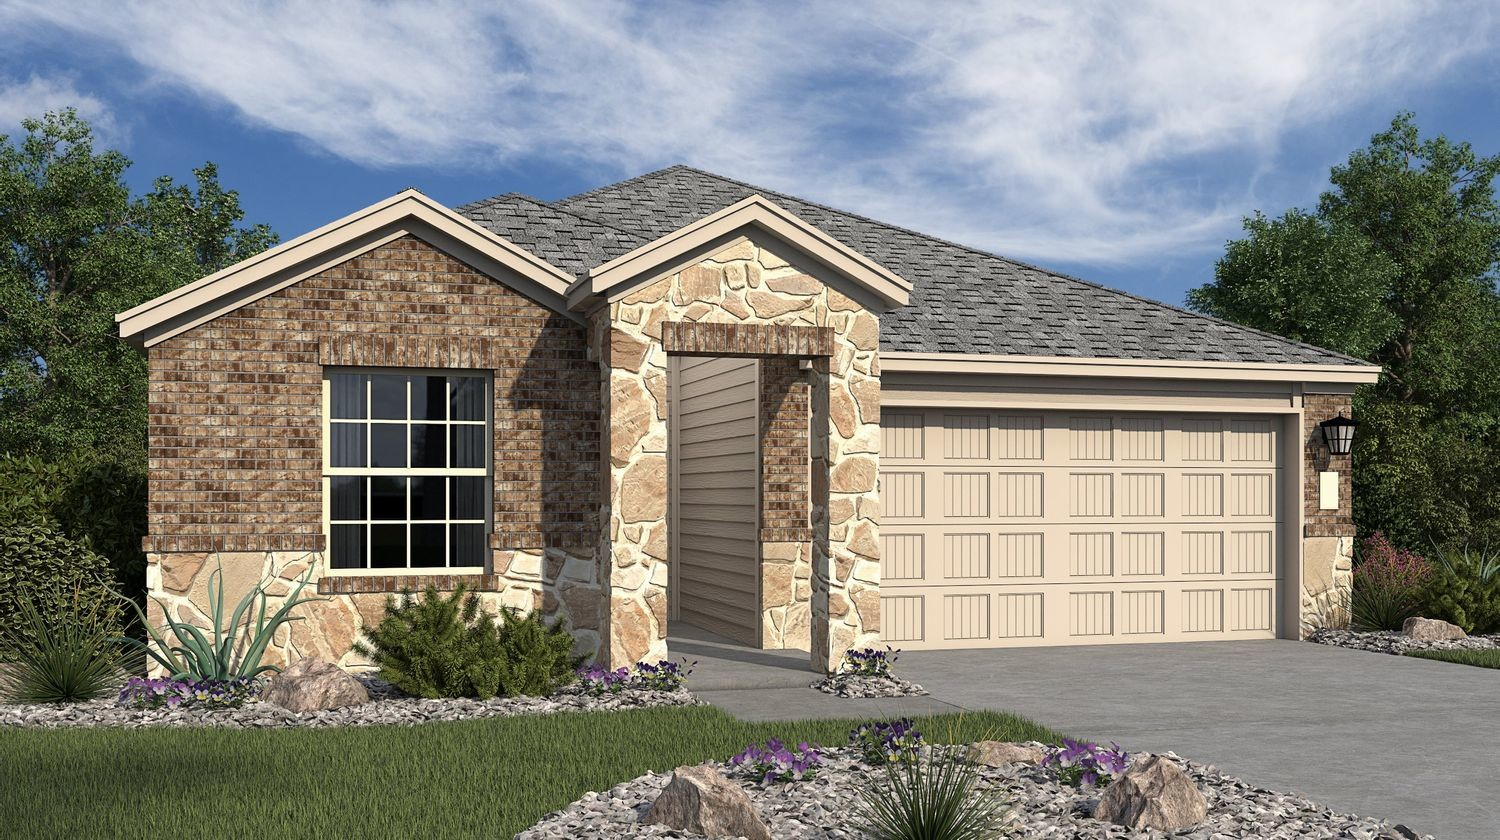 Move In Ready New Home In Mission Del Lago - Barrington, Westfield, Cottage, WM, SHBV Community